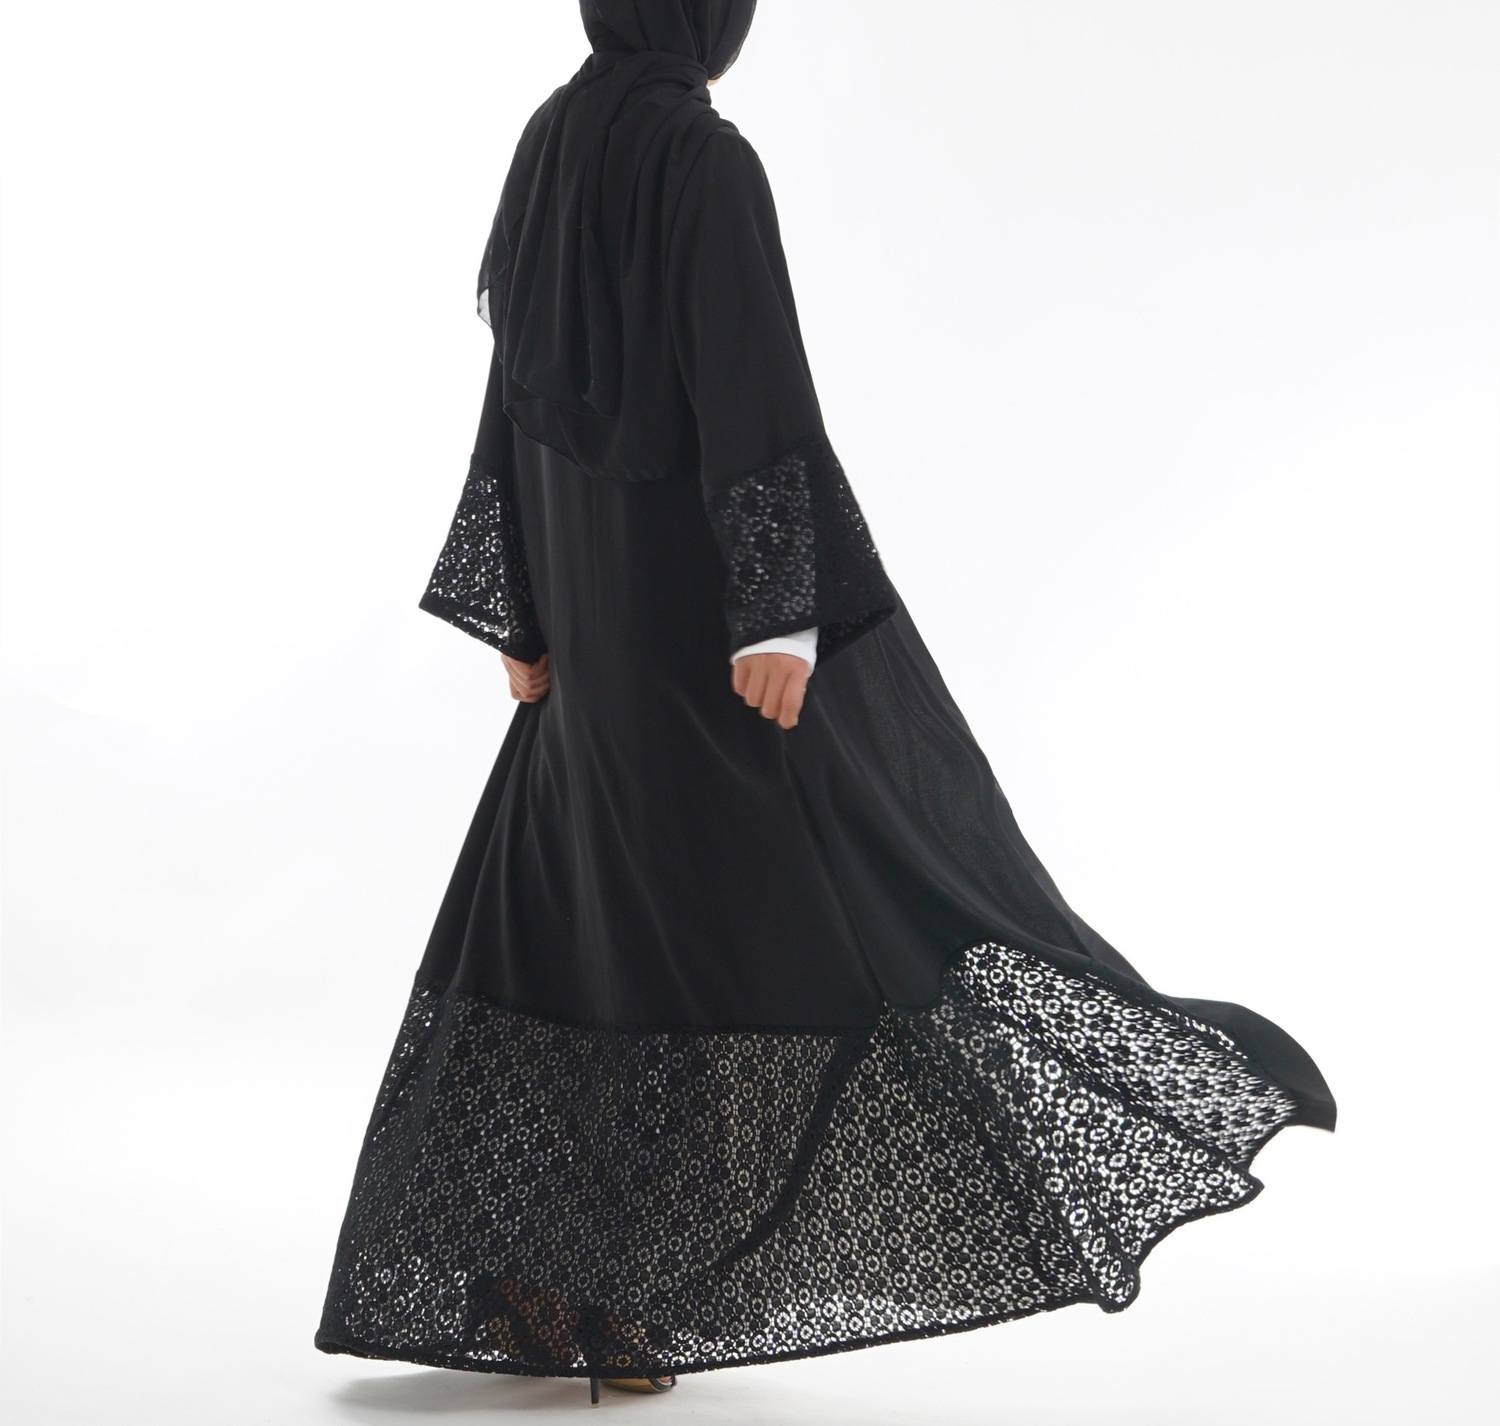 Suit hijab Dress Hollow Out Full Cotton Lace Black Nida Woman Robe femme Robe abaya turkey bangladesh kaftan dubai vestido image